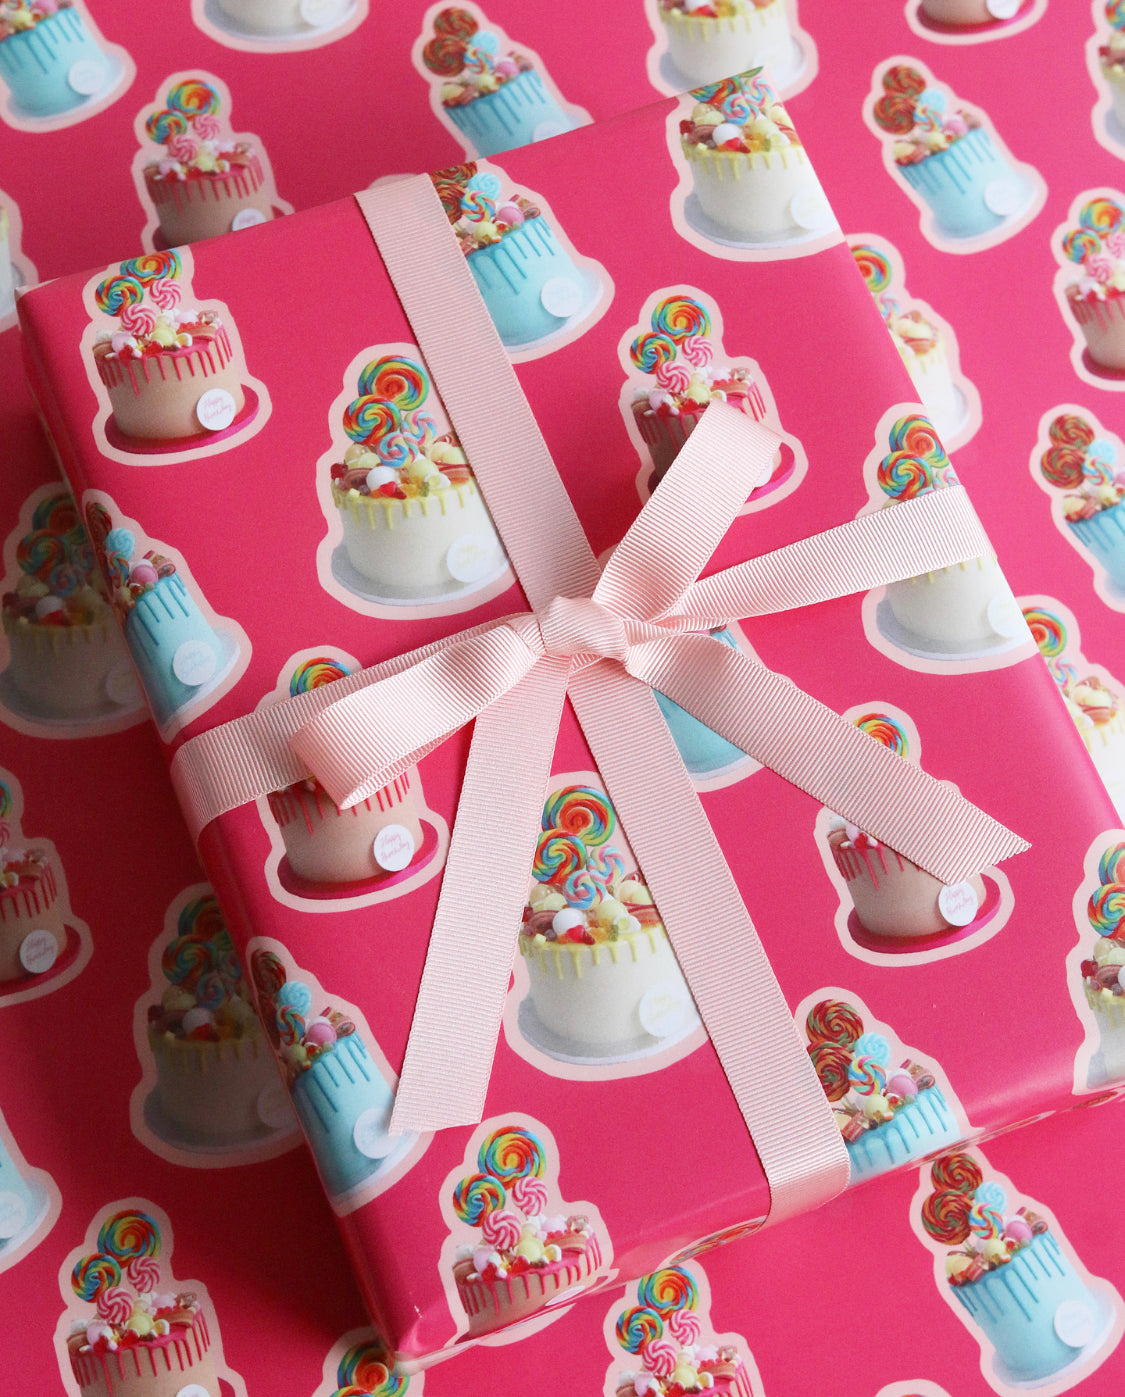 Sweetie Cake Pink Wrapping Paper tied with Ribbon At angle